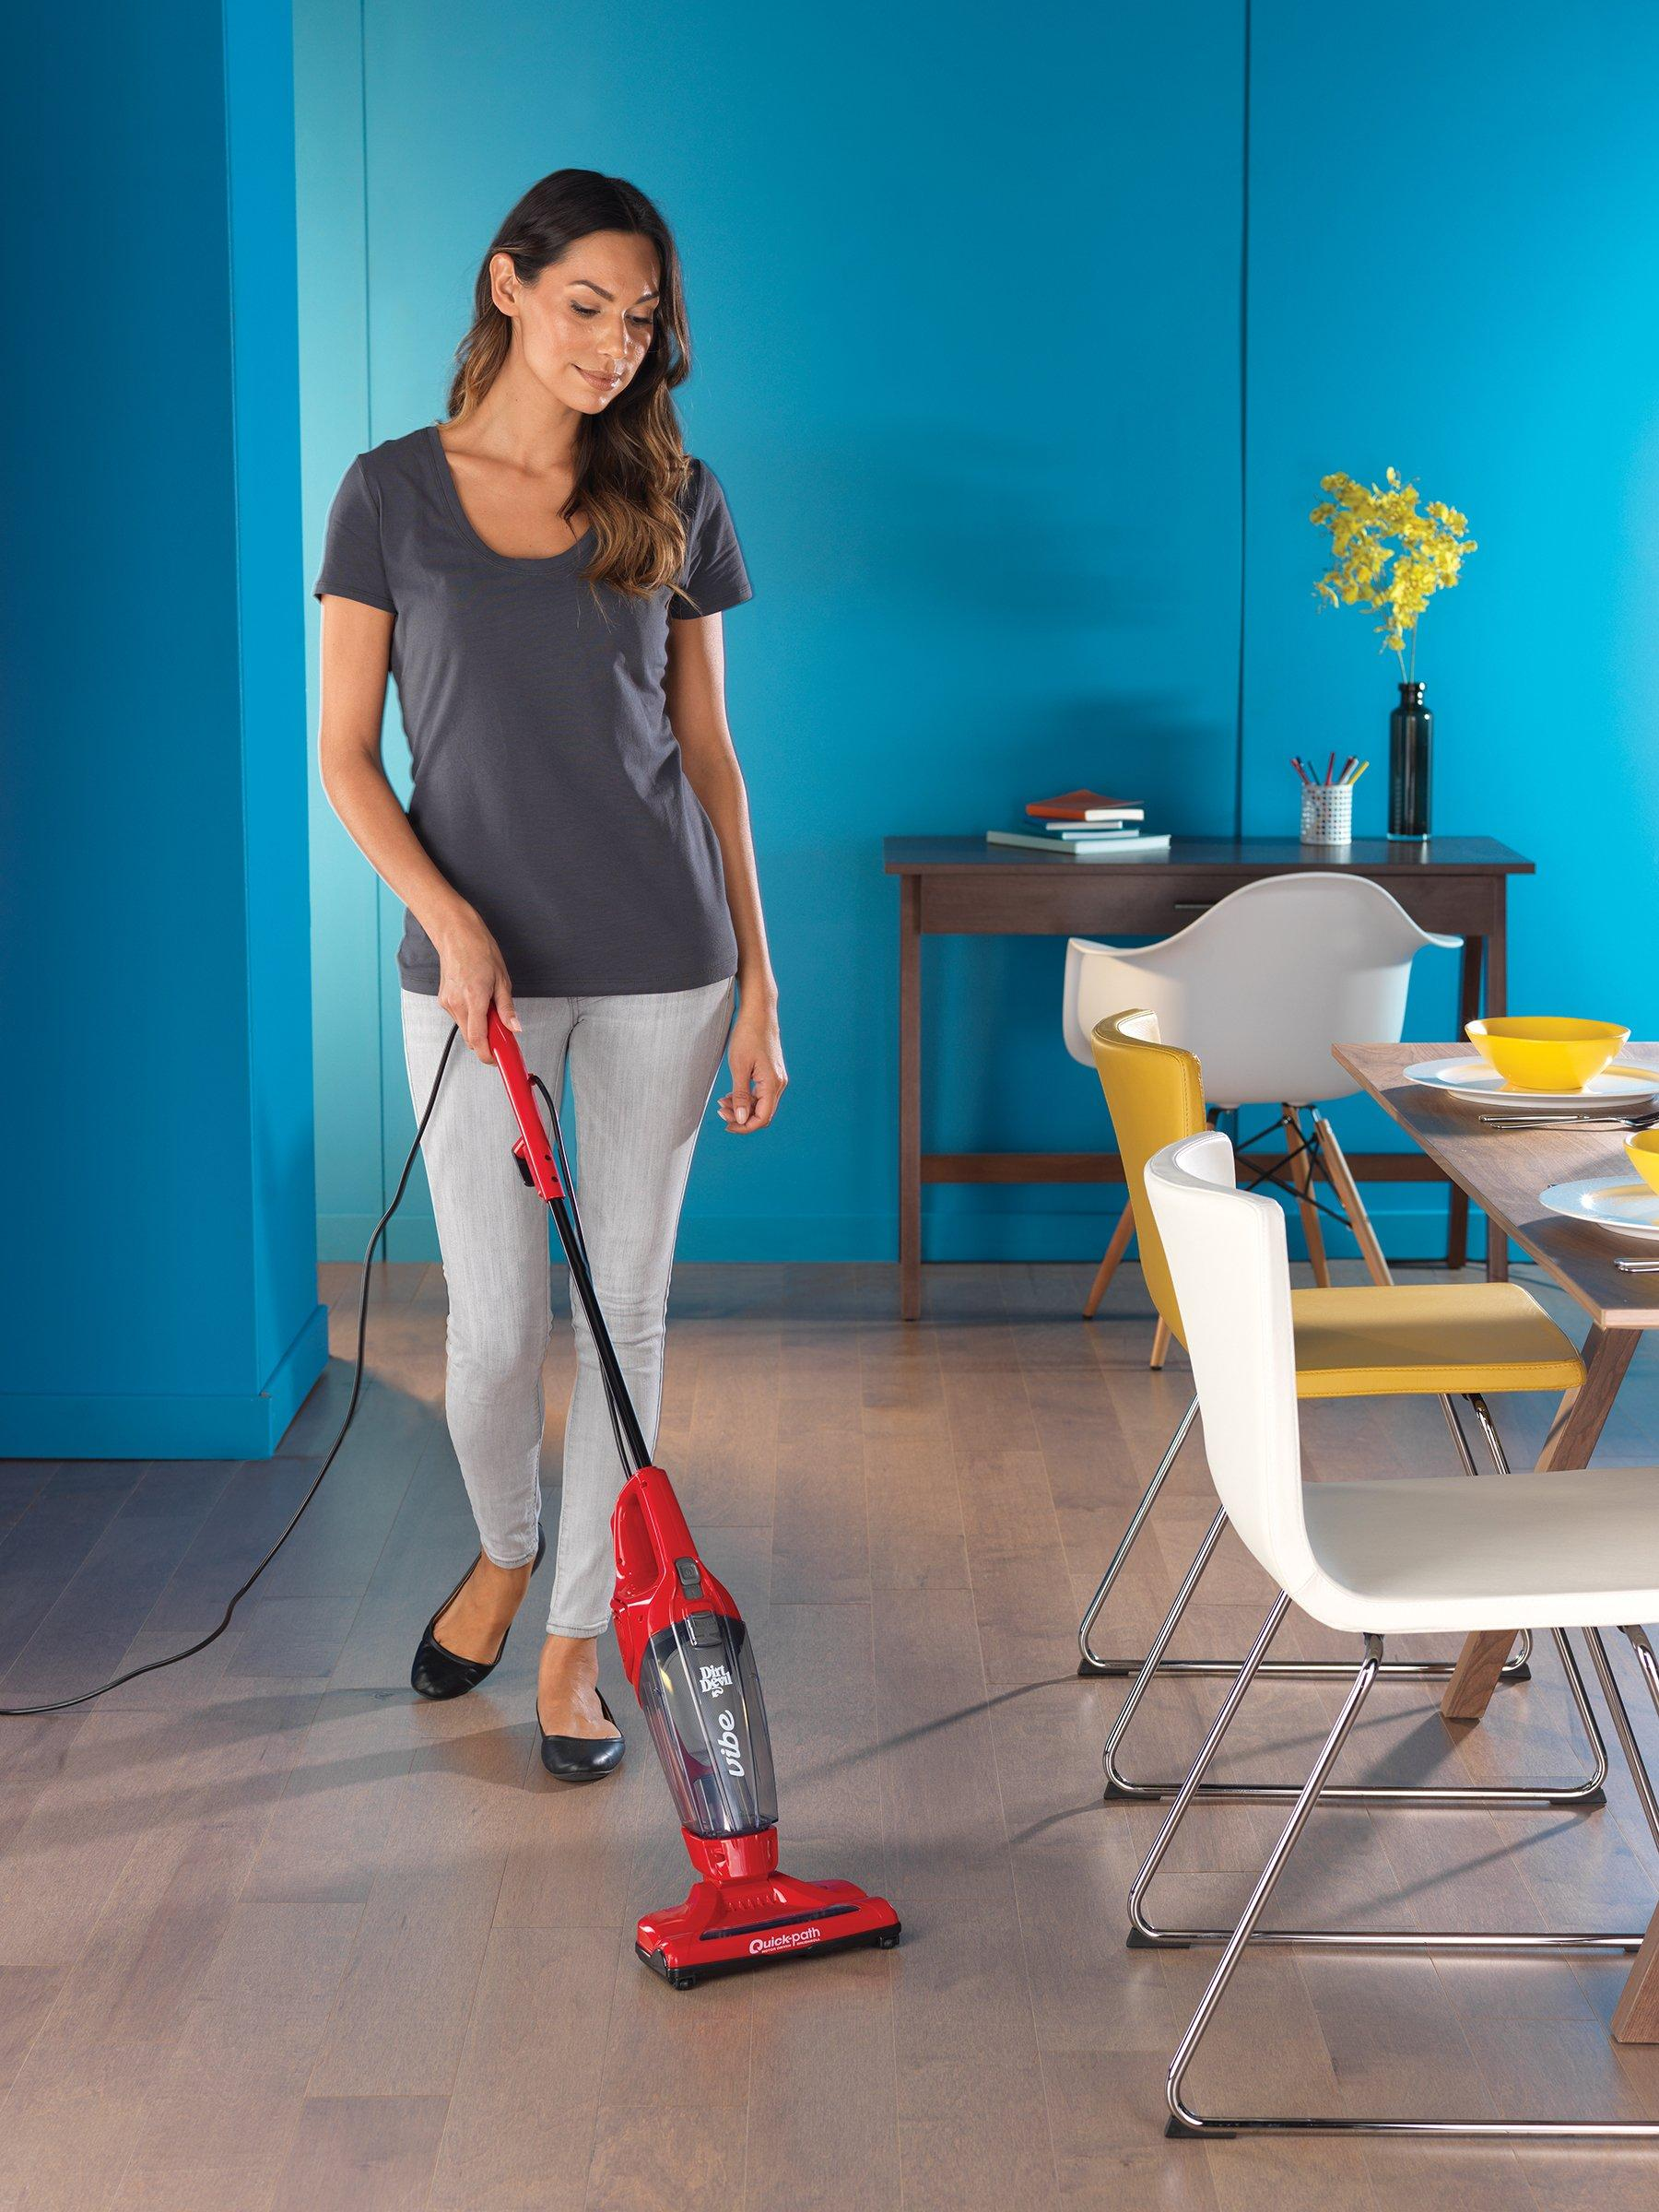 Vibe 3-in-1 Corded Bagless Stick Vacuum4